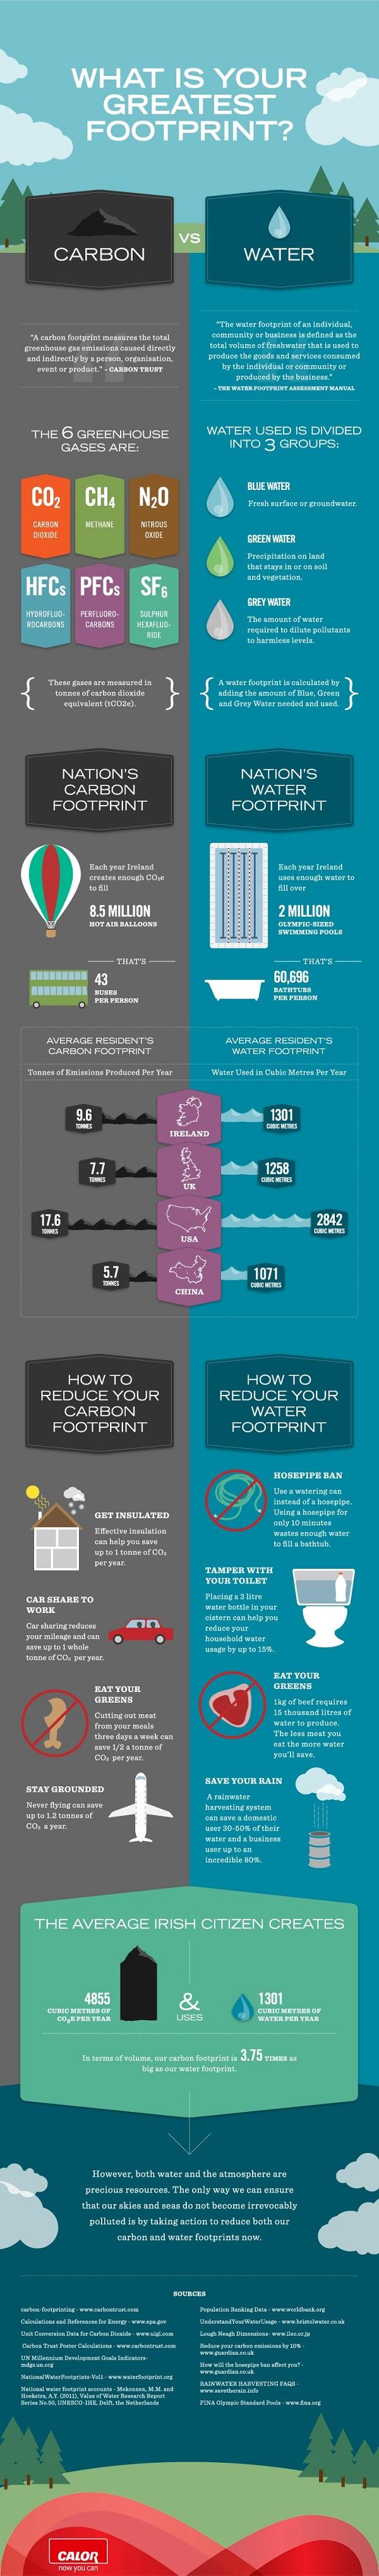 What Is Your Greatest Footprint? (Carbon vs. Water) Infographic